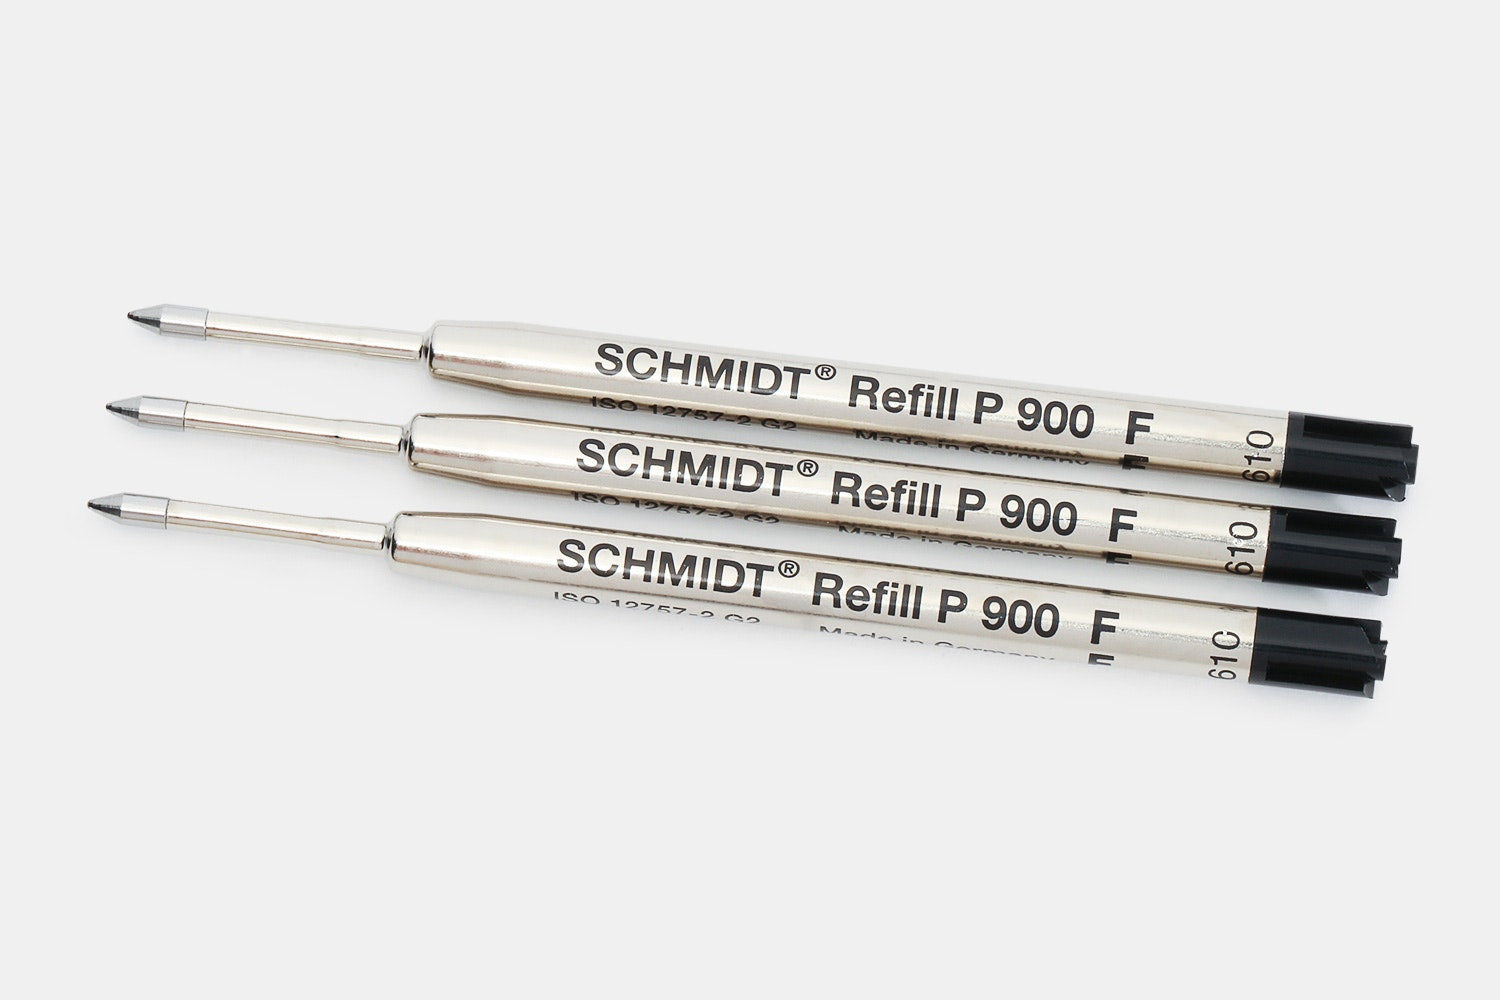 P900 Refill 3-pack